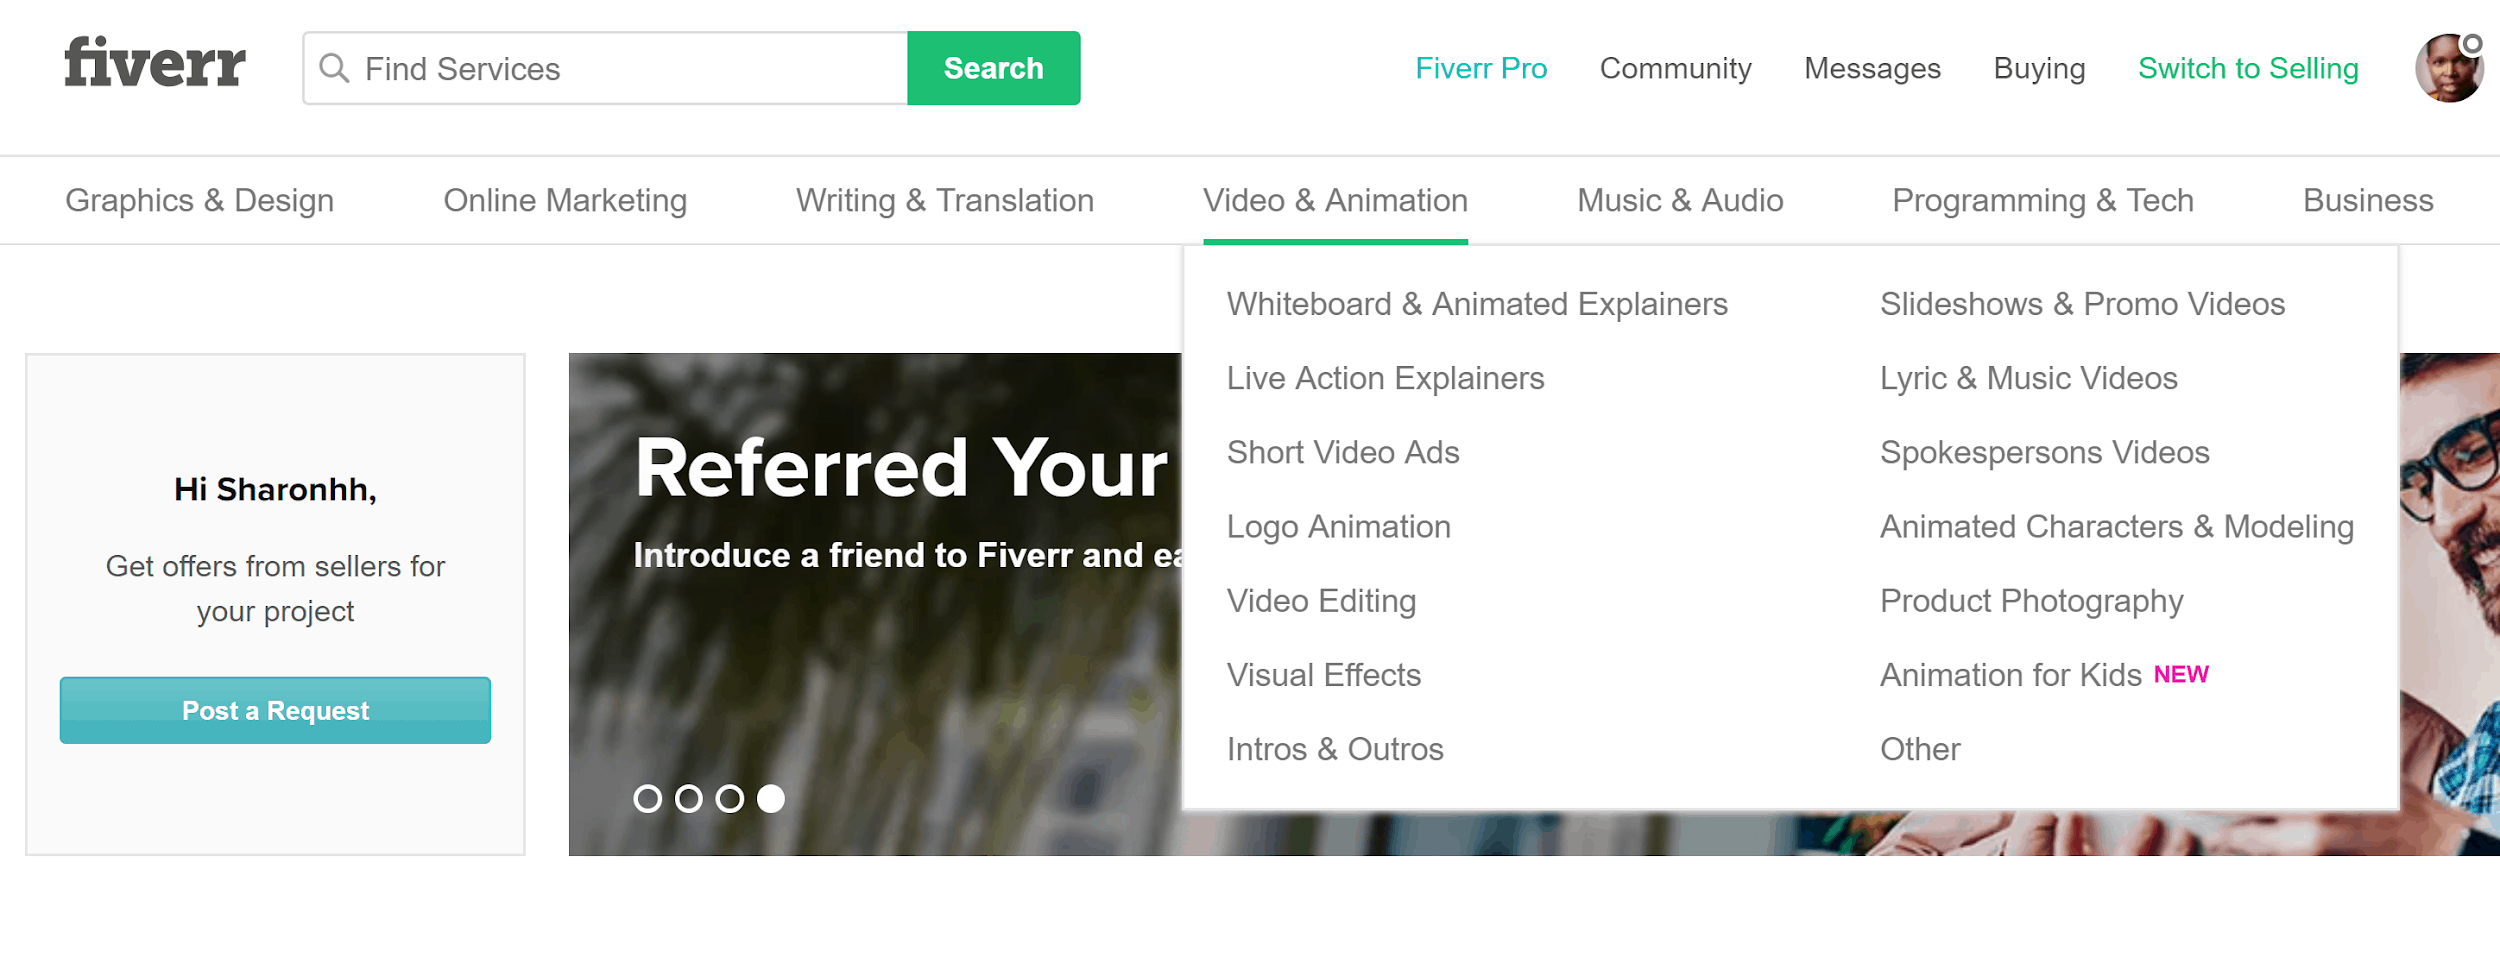 Fiverr search function